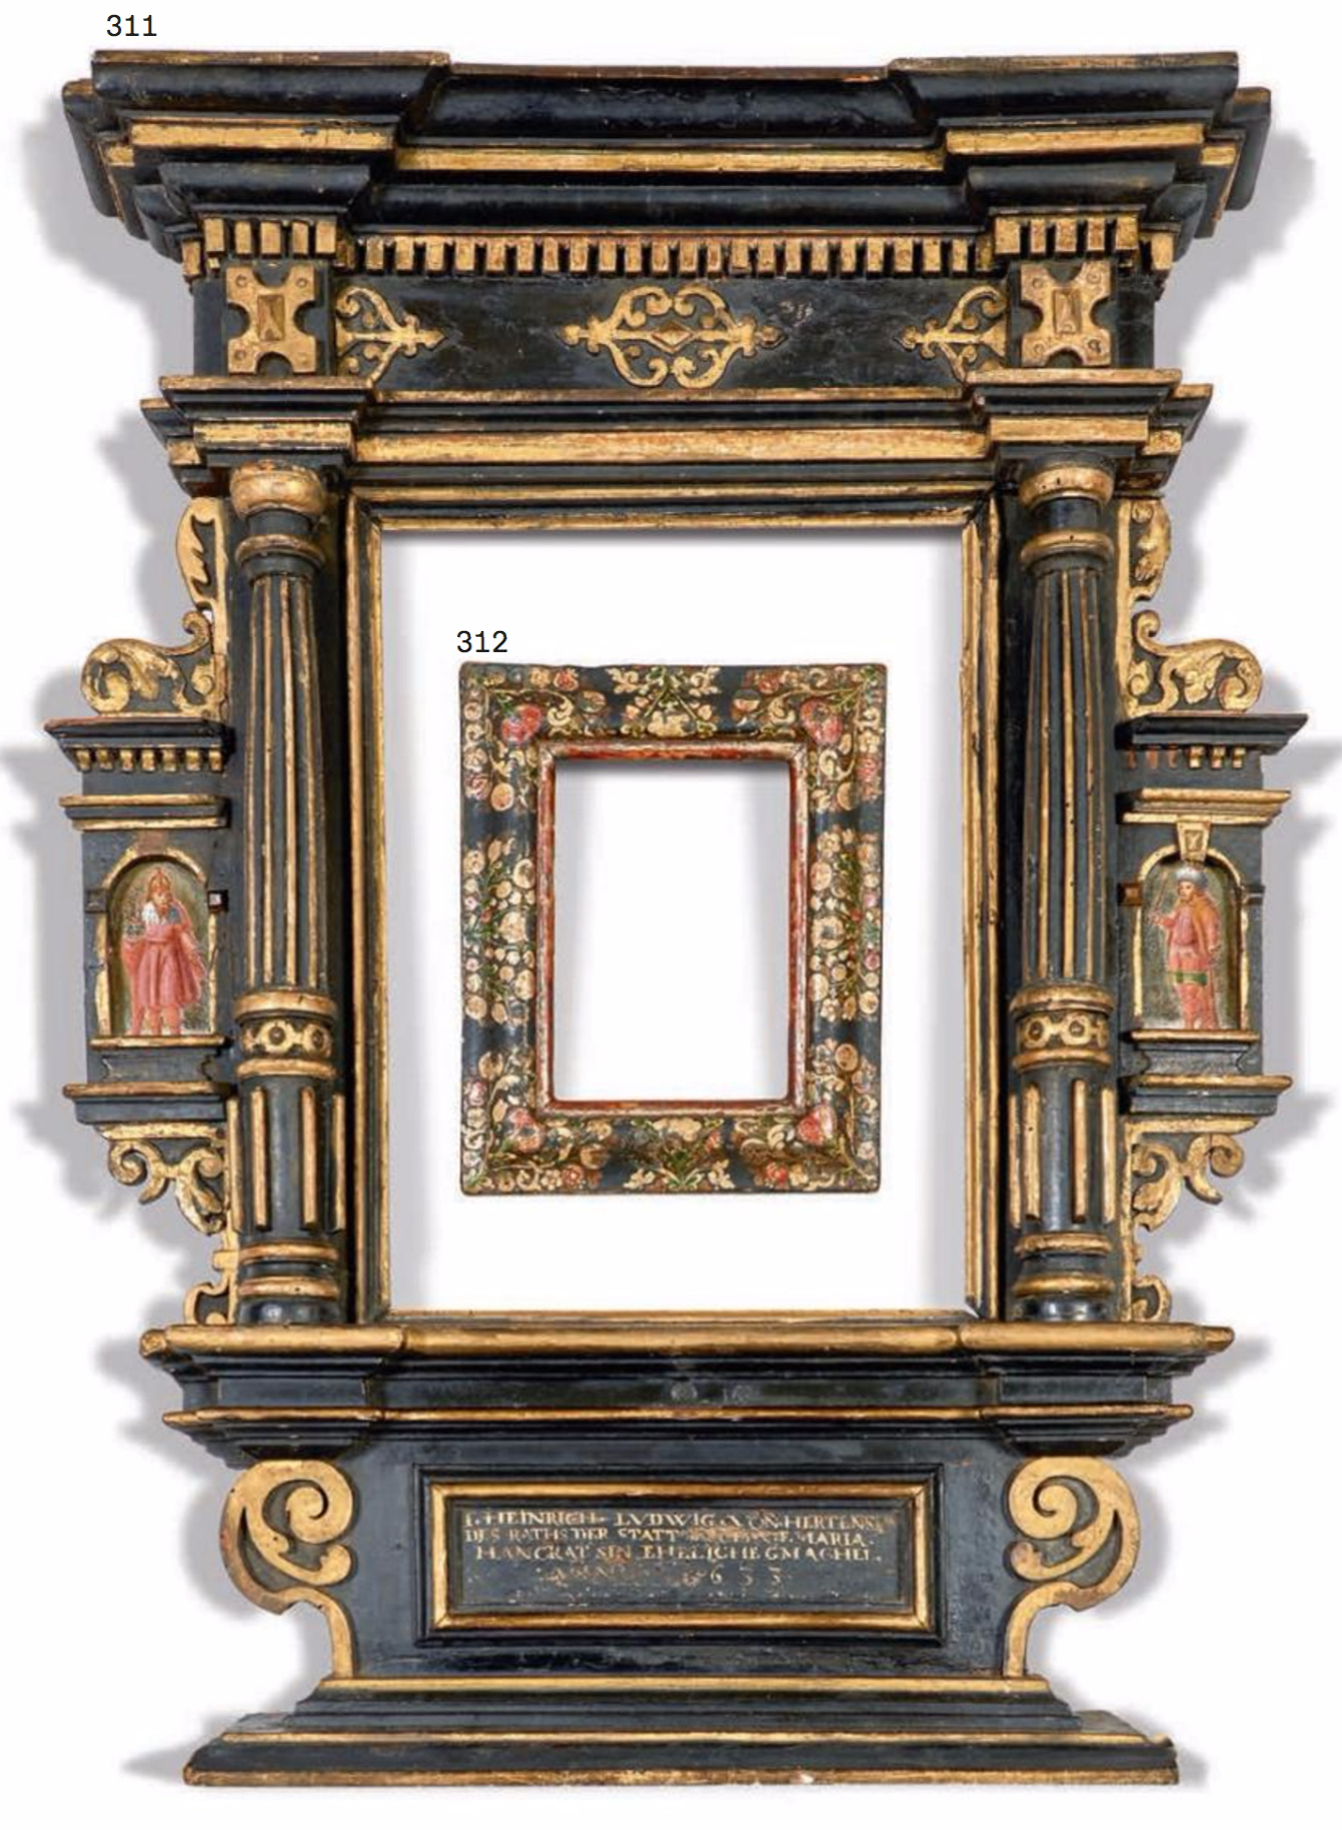 Antique frame sale the frame blog lot 311 312 germanitalian venetian 17th 18th century frames jeuxipadfo Image collections